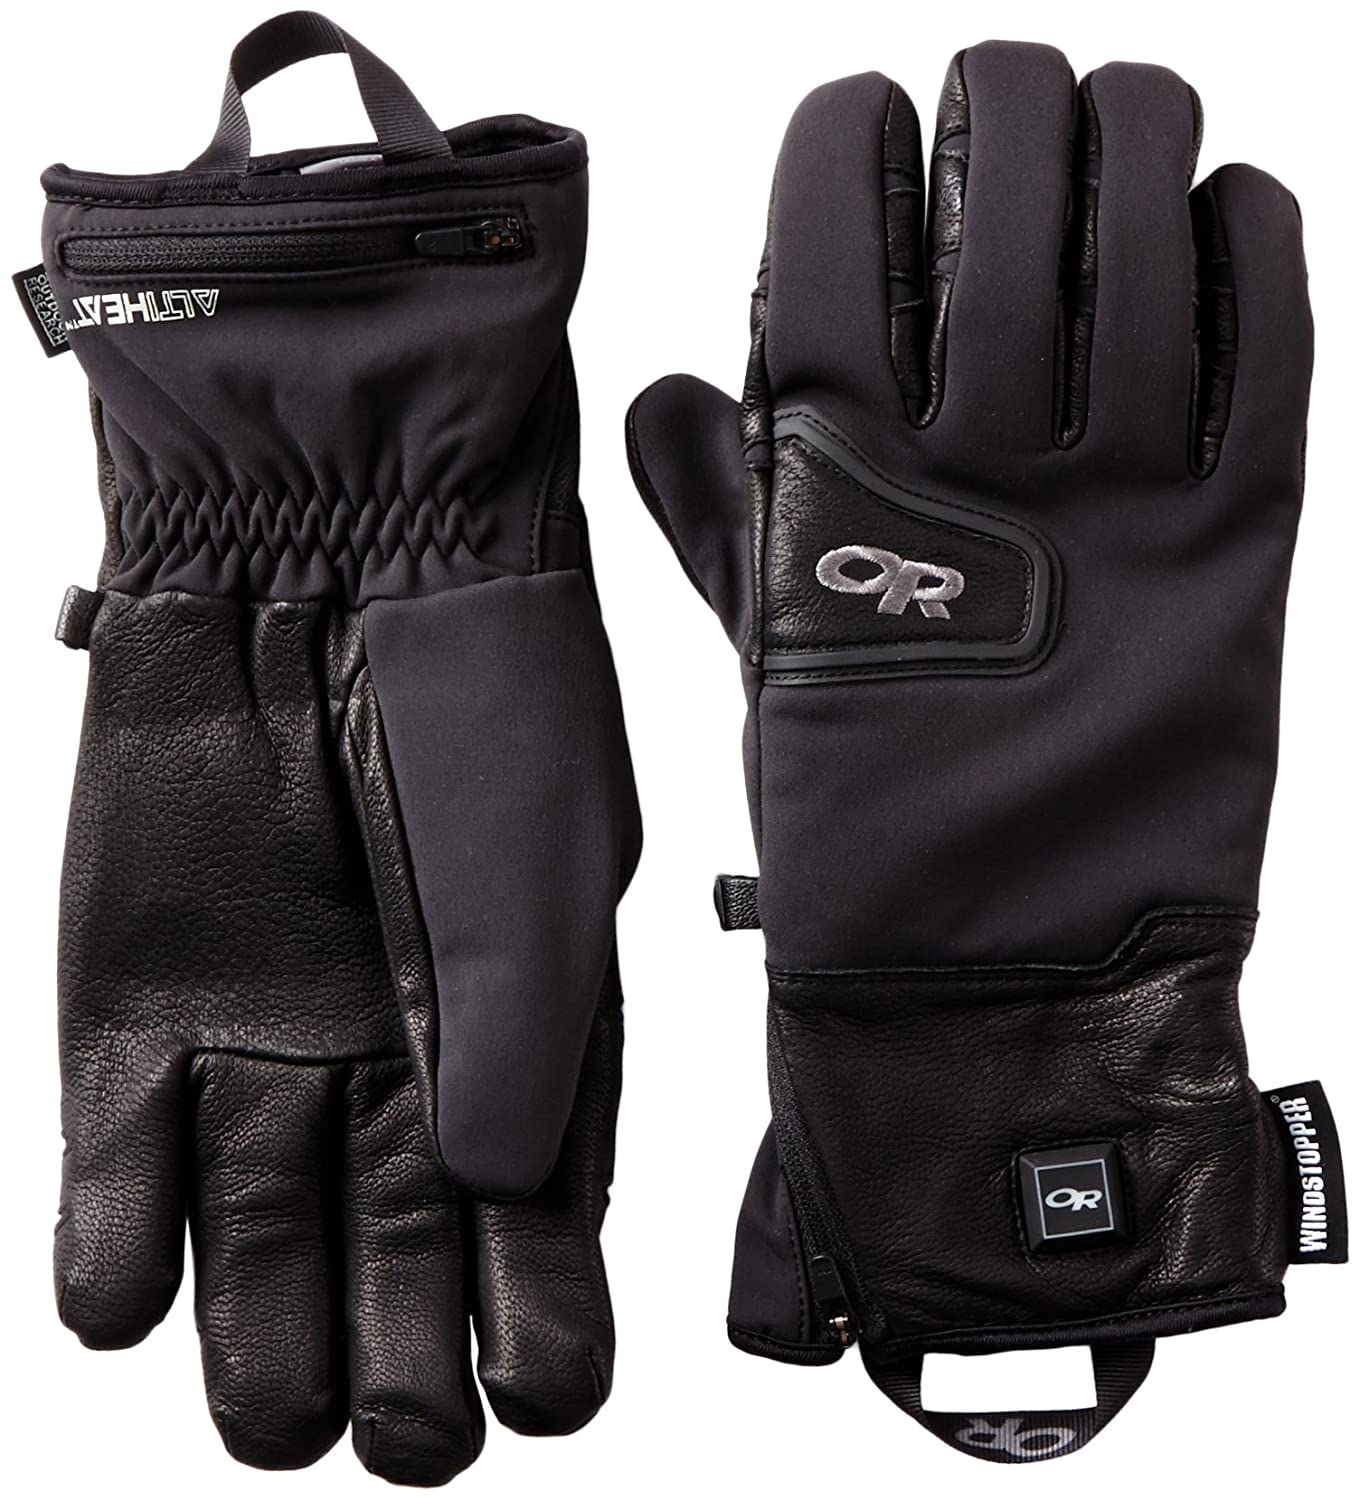 Outdoor Research Stormtracker Beheizte Handschuhe